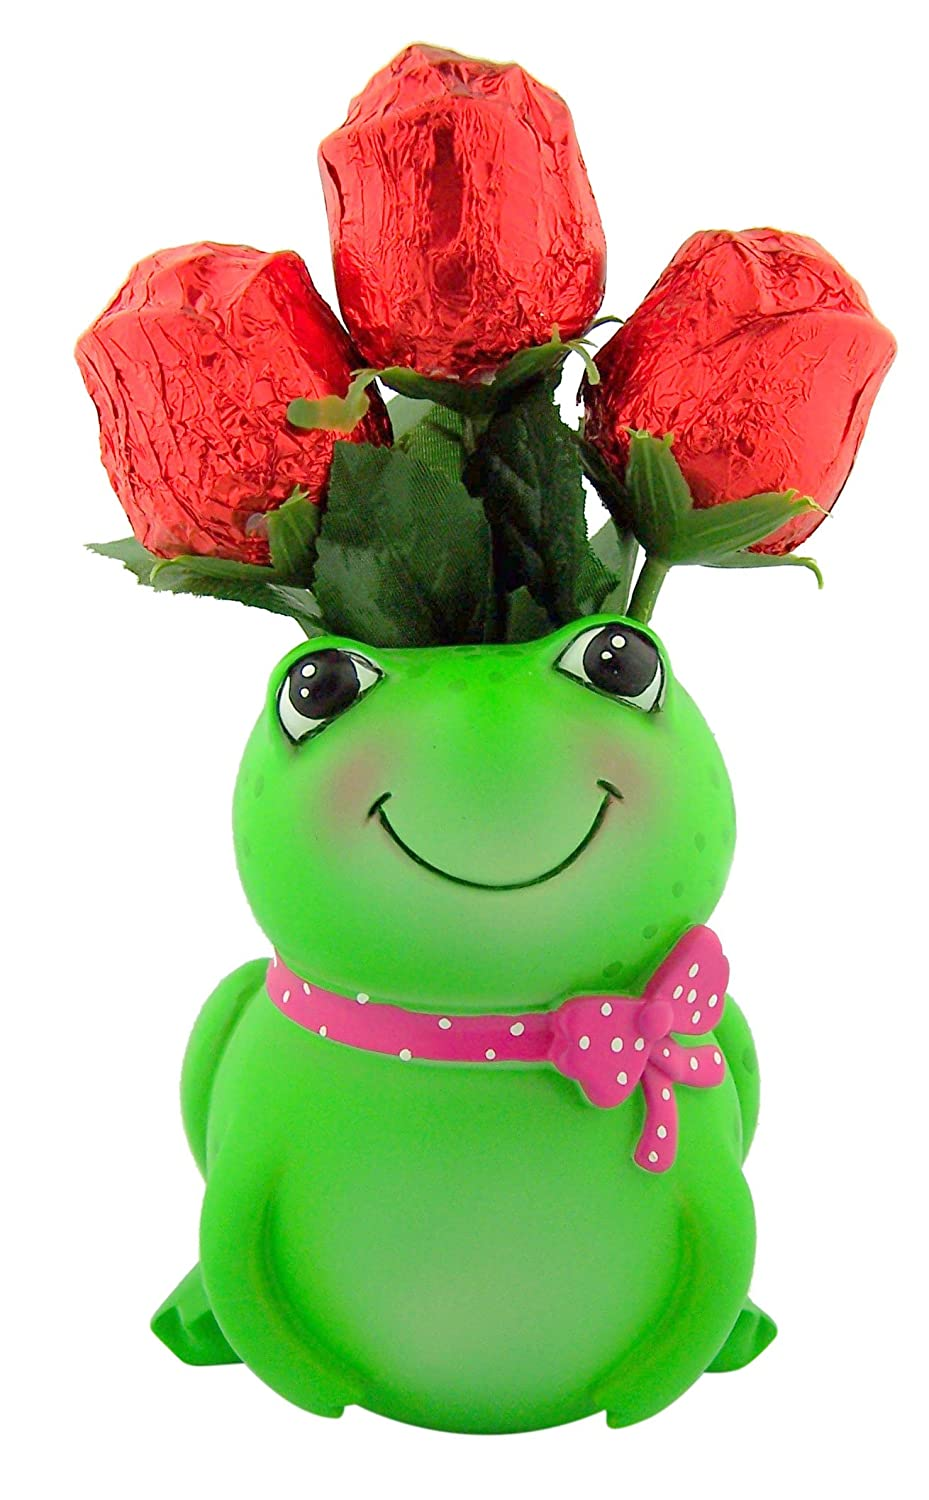 Hard to Find Mother's Day Unique Gift Idea (3) Long Stem Hollow Chocolate Rose Bouquet in Hand Painted Smilling Green Frog Shape 4 3/4″ H Resin Pottery Vase